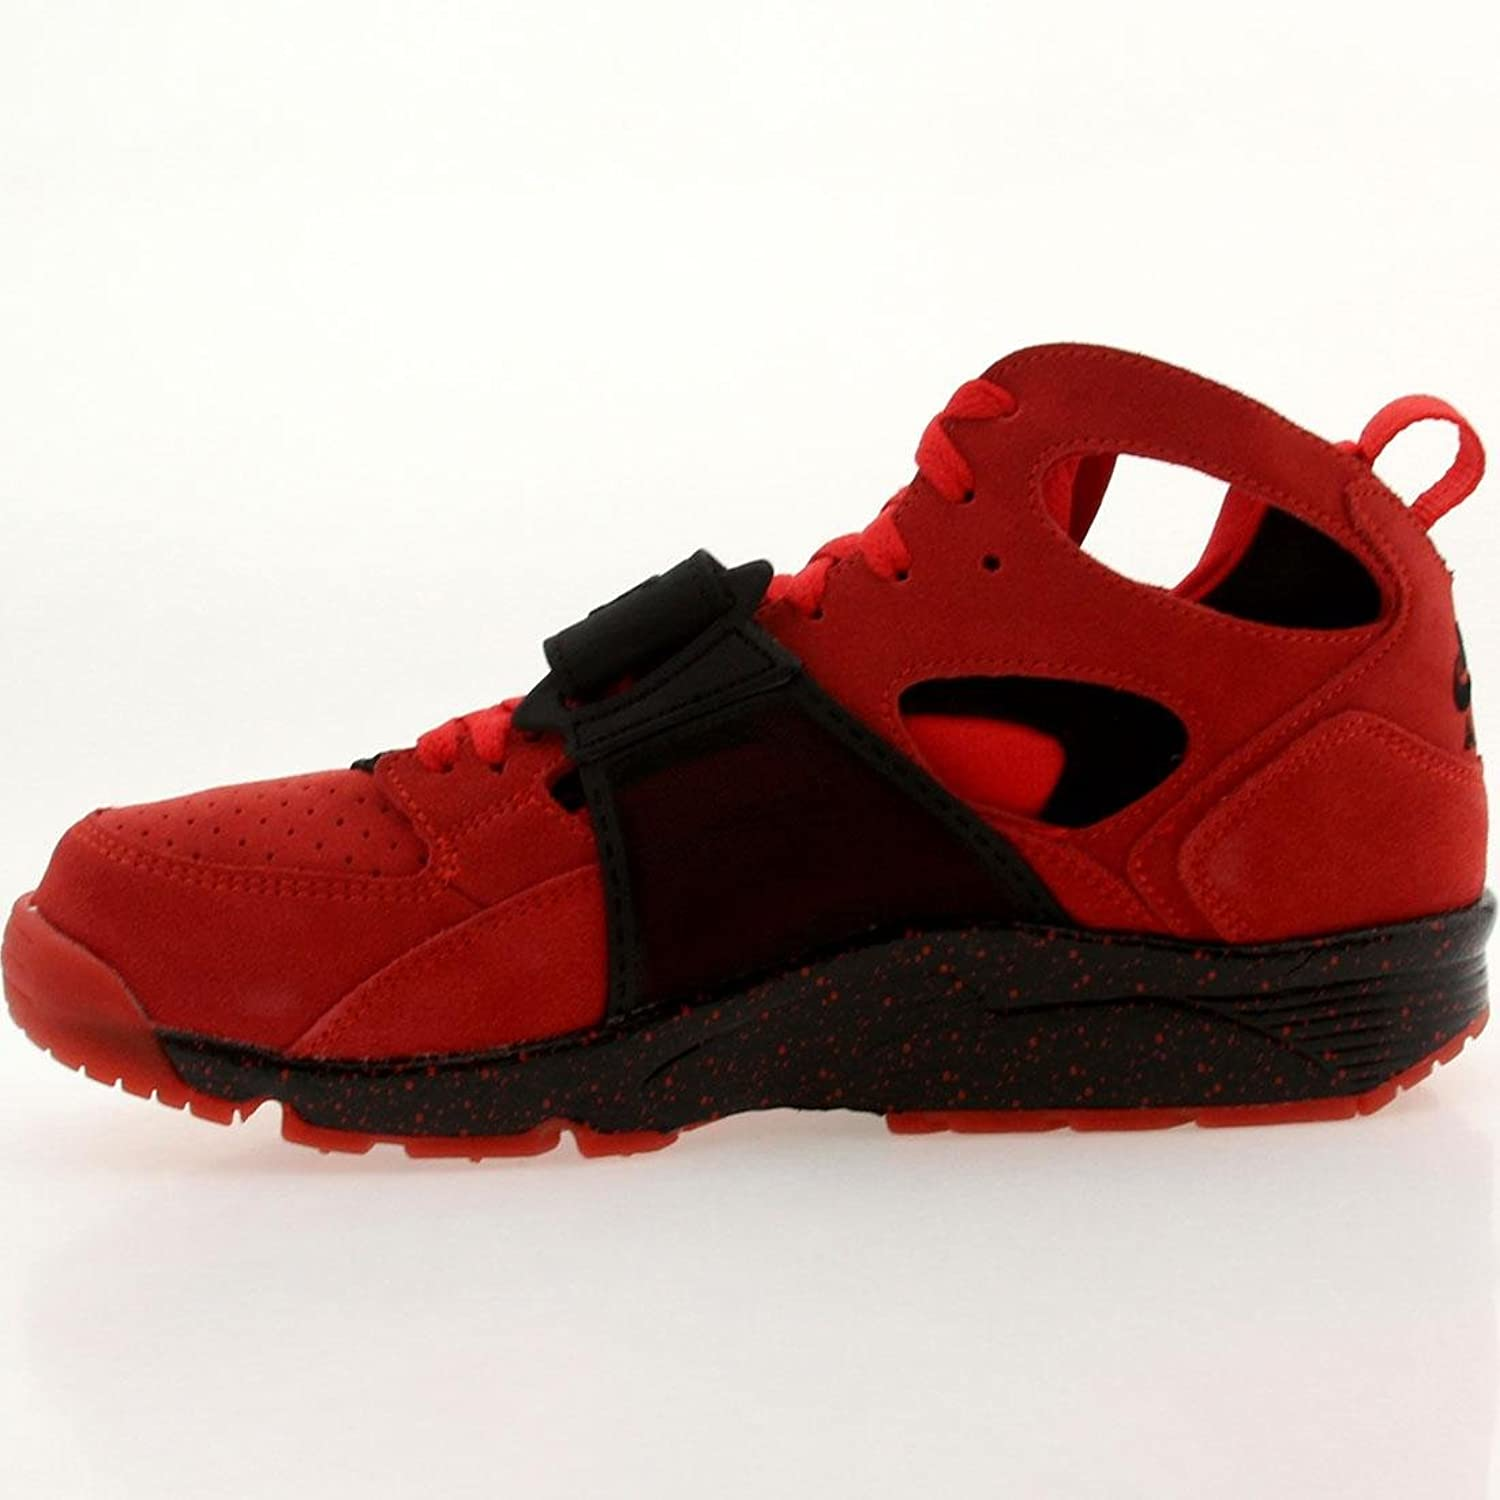 Nike Mens Air Huarache PRM QS Love Hate Red Black Basketball Trainer Size 6  UK: Amazon.co.uk: Shoes & Bags